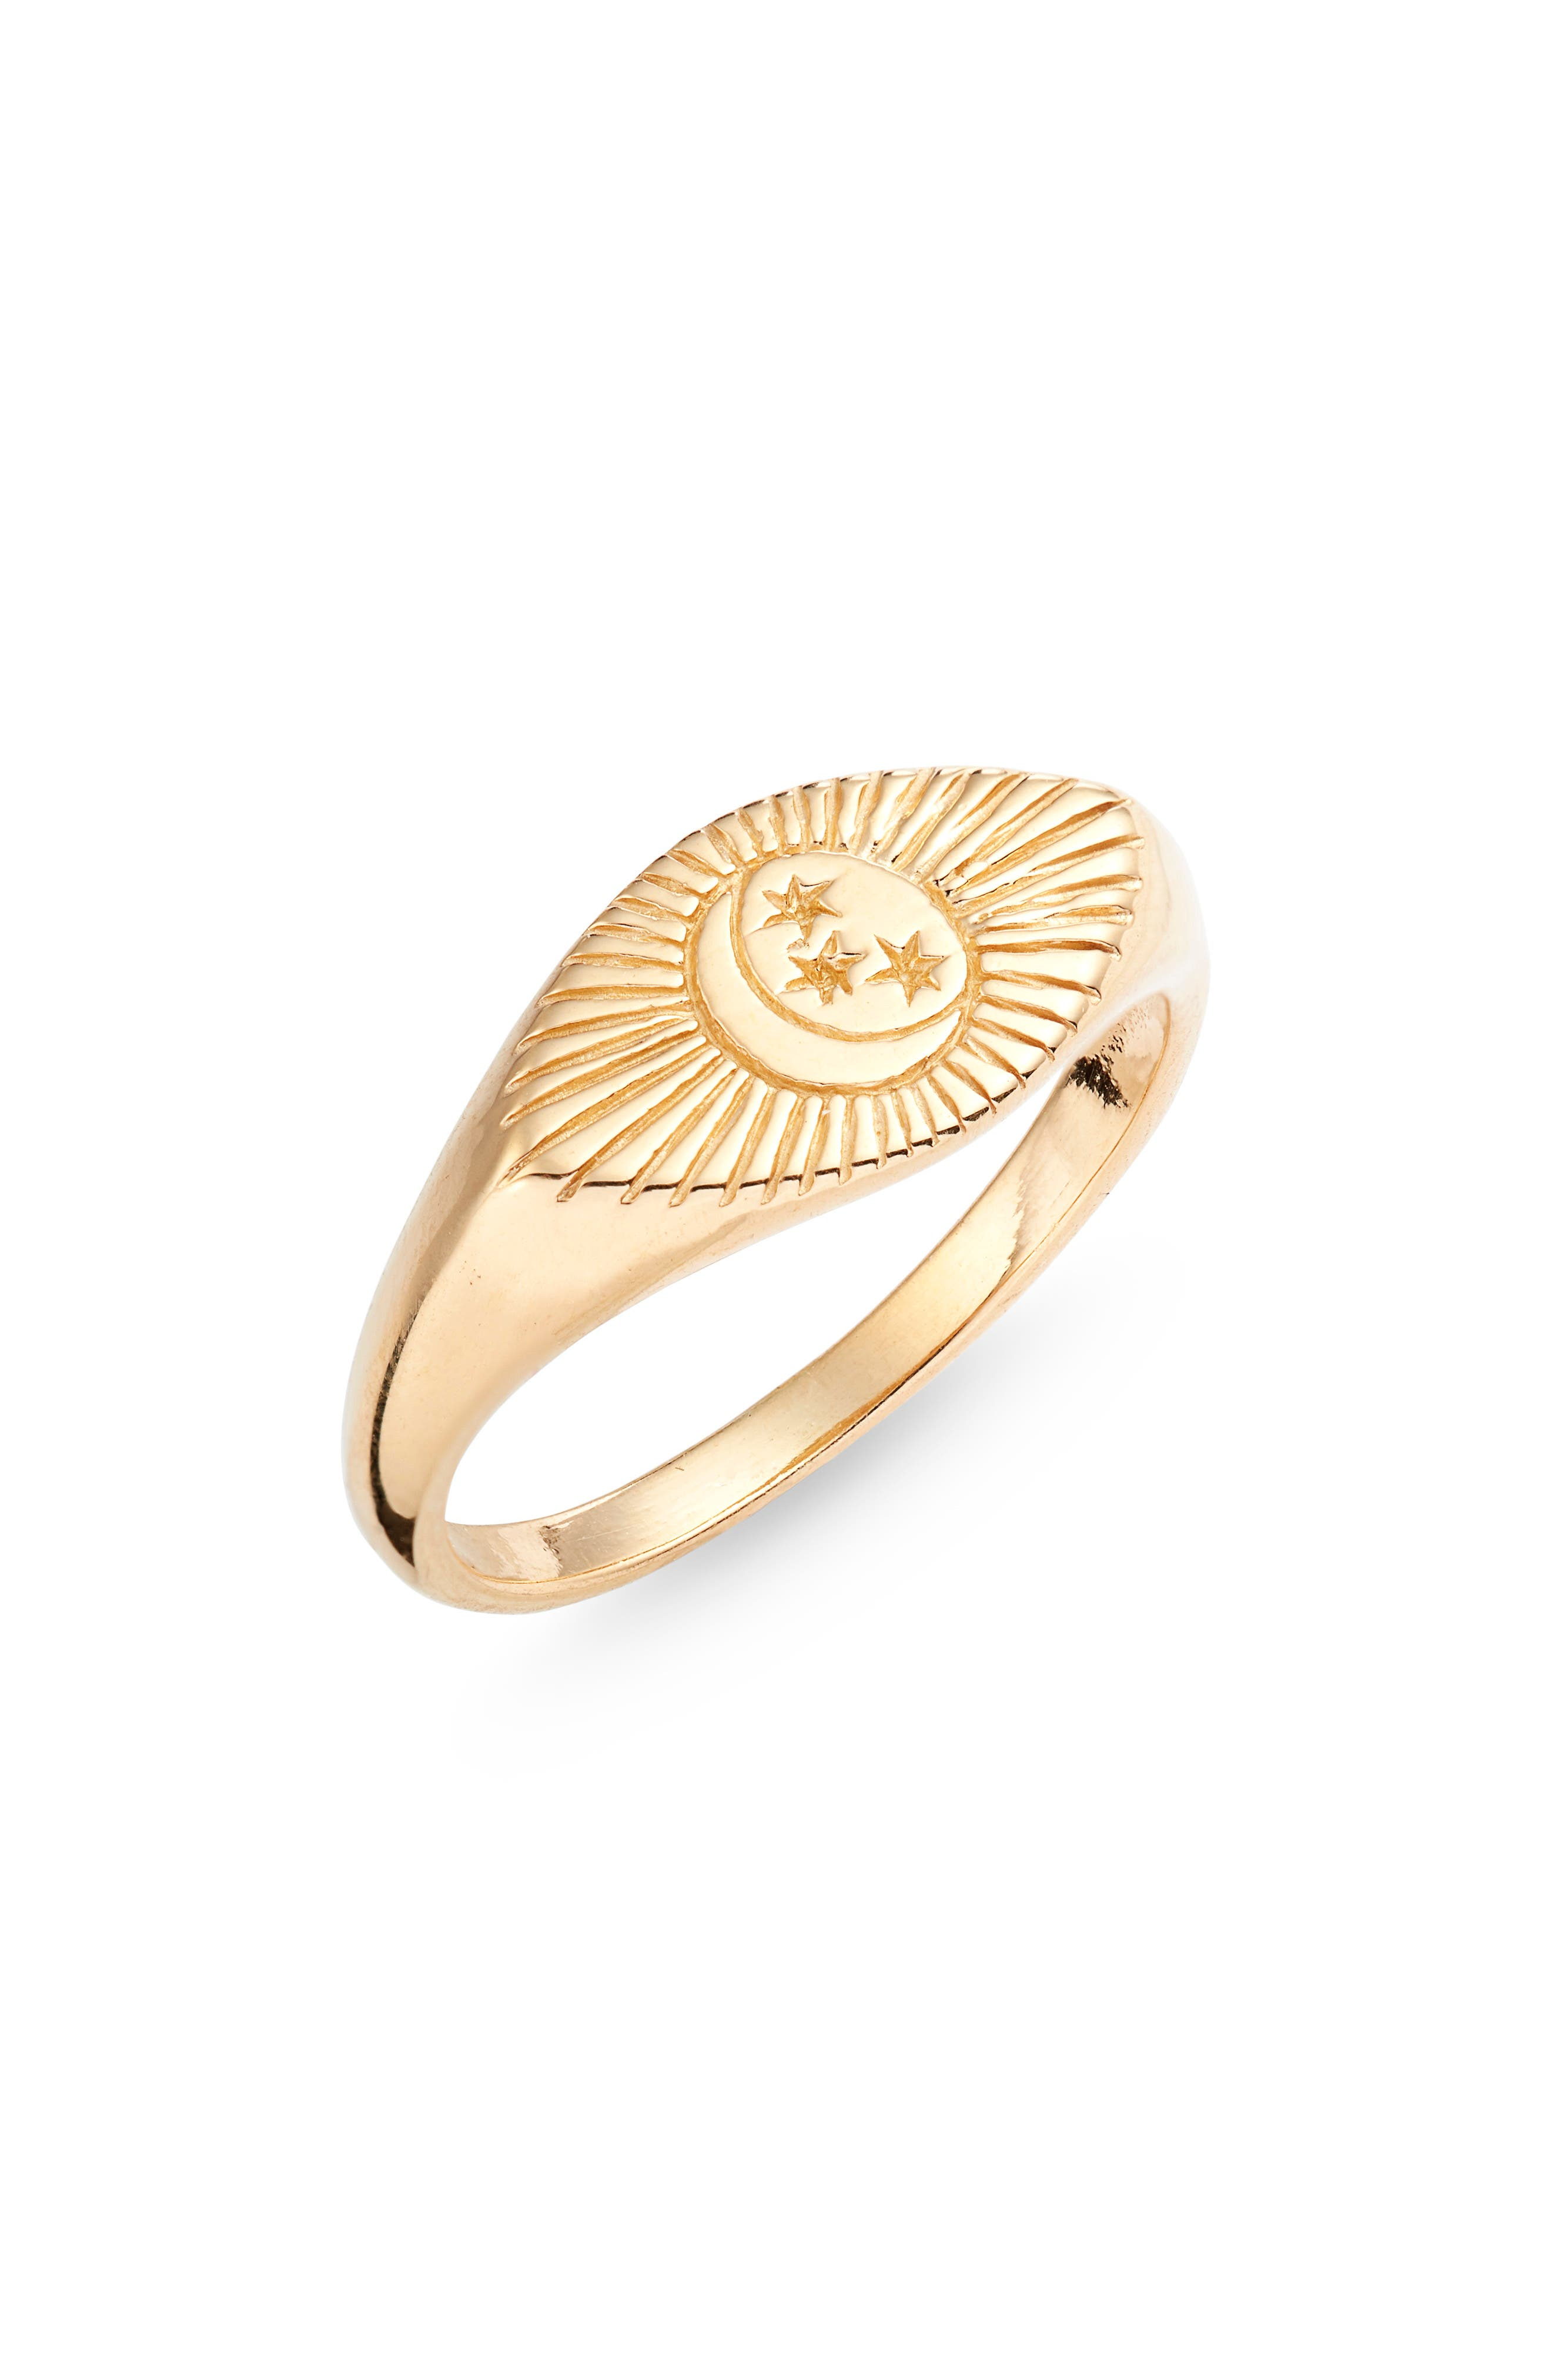 This signet ring etched in a moon-and-stars motif is inspired by the evil eye, an ancient symbol of protection. Style Name: Sterling Forever Starry Nights Eye Signet Ring. Style Number: 5904763. Available in stores.